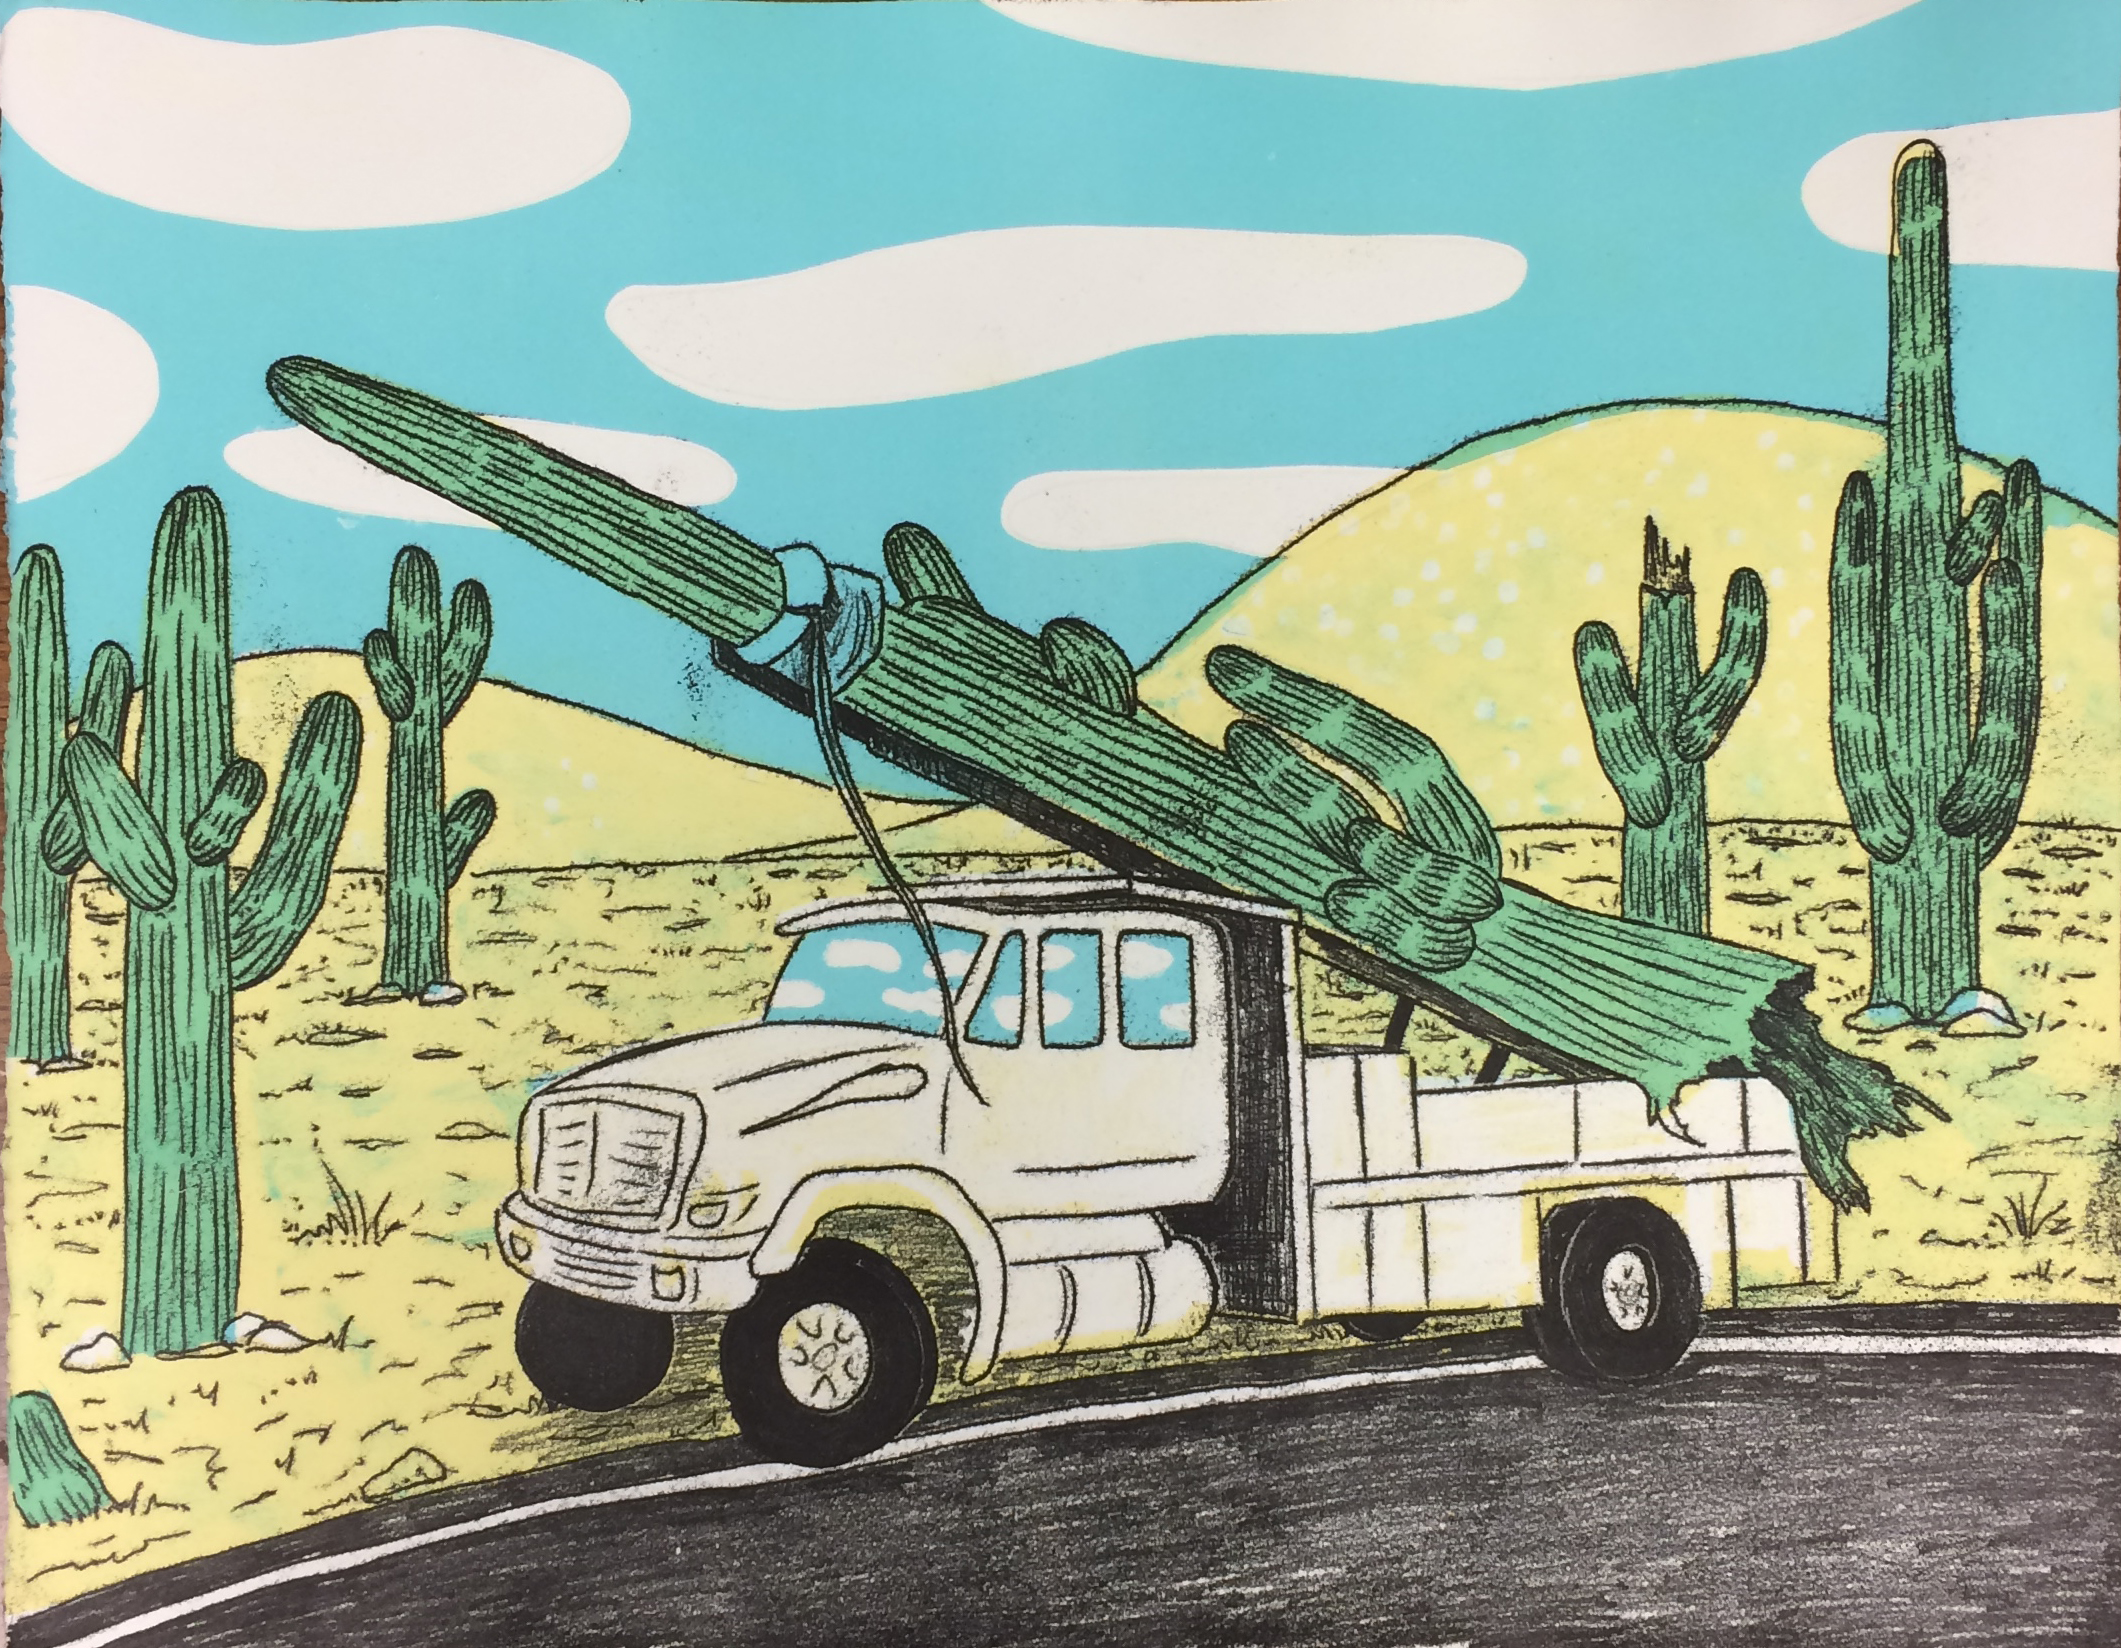 Poaching the Saguaro